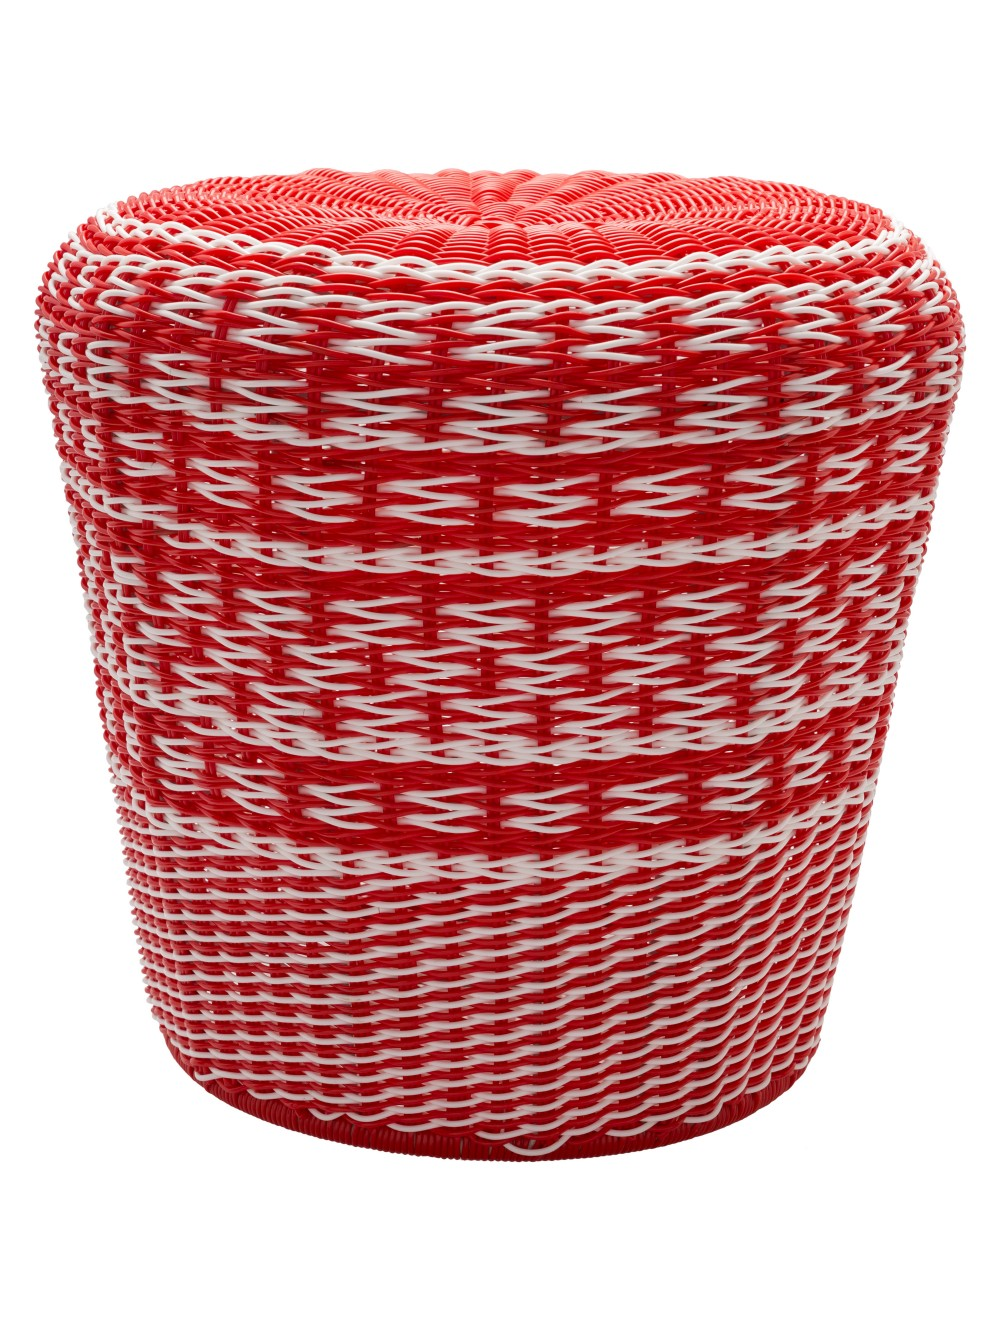 indoor / outdoor stool